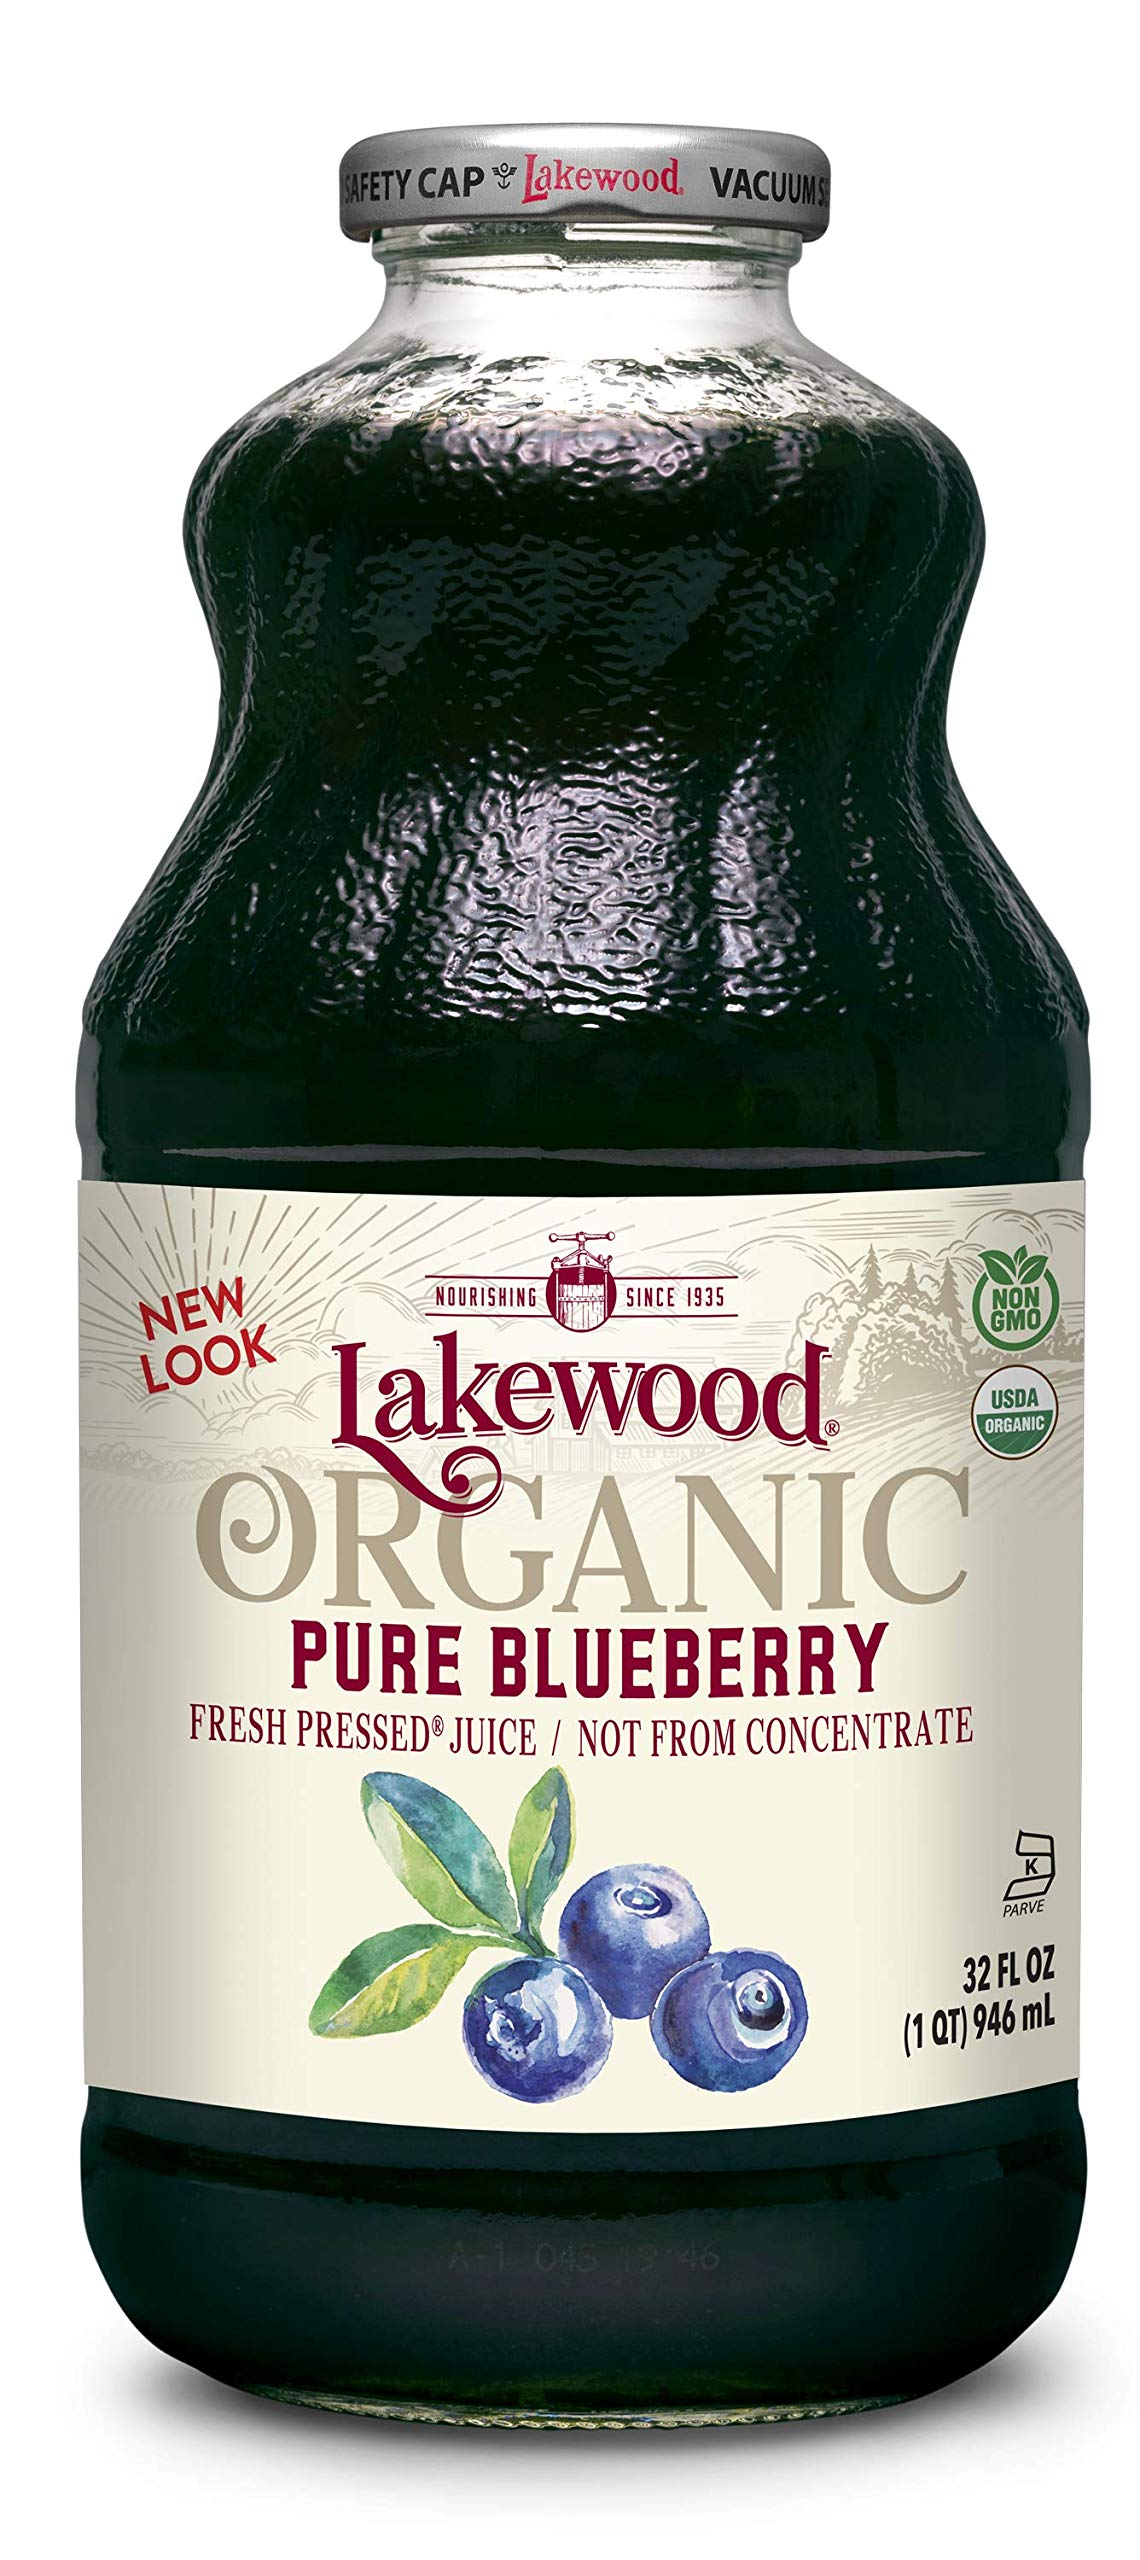 Lakewood Organic PURE Blueberry Juice, 32-Ounce Bottles (Pack of 6) by Lakewood